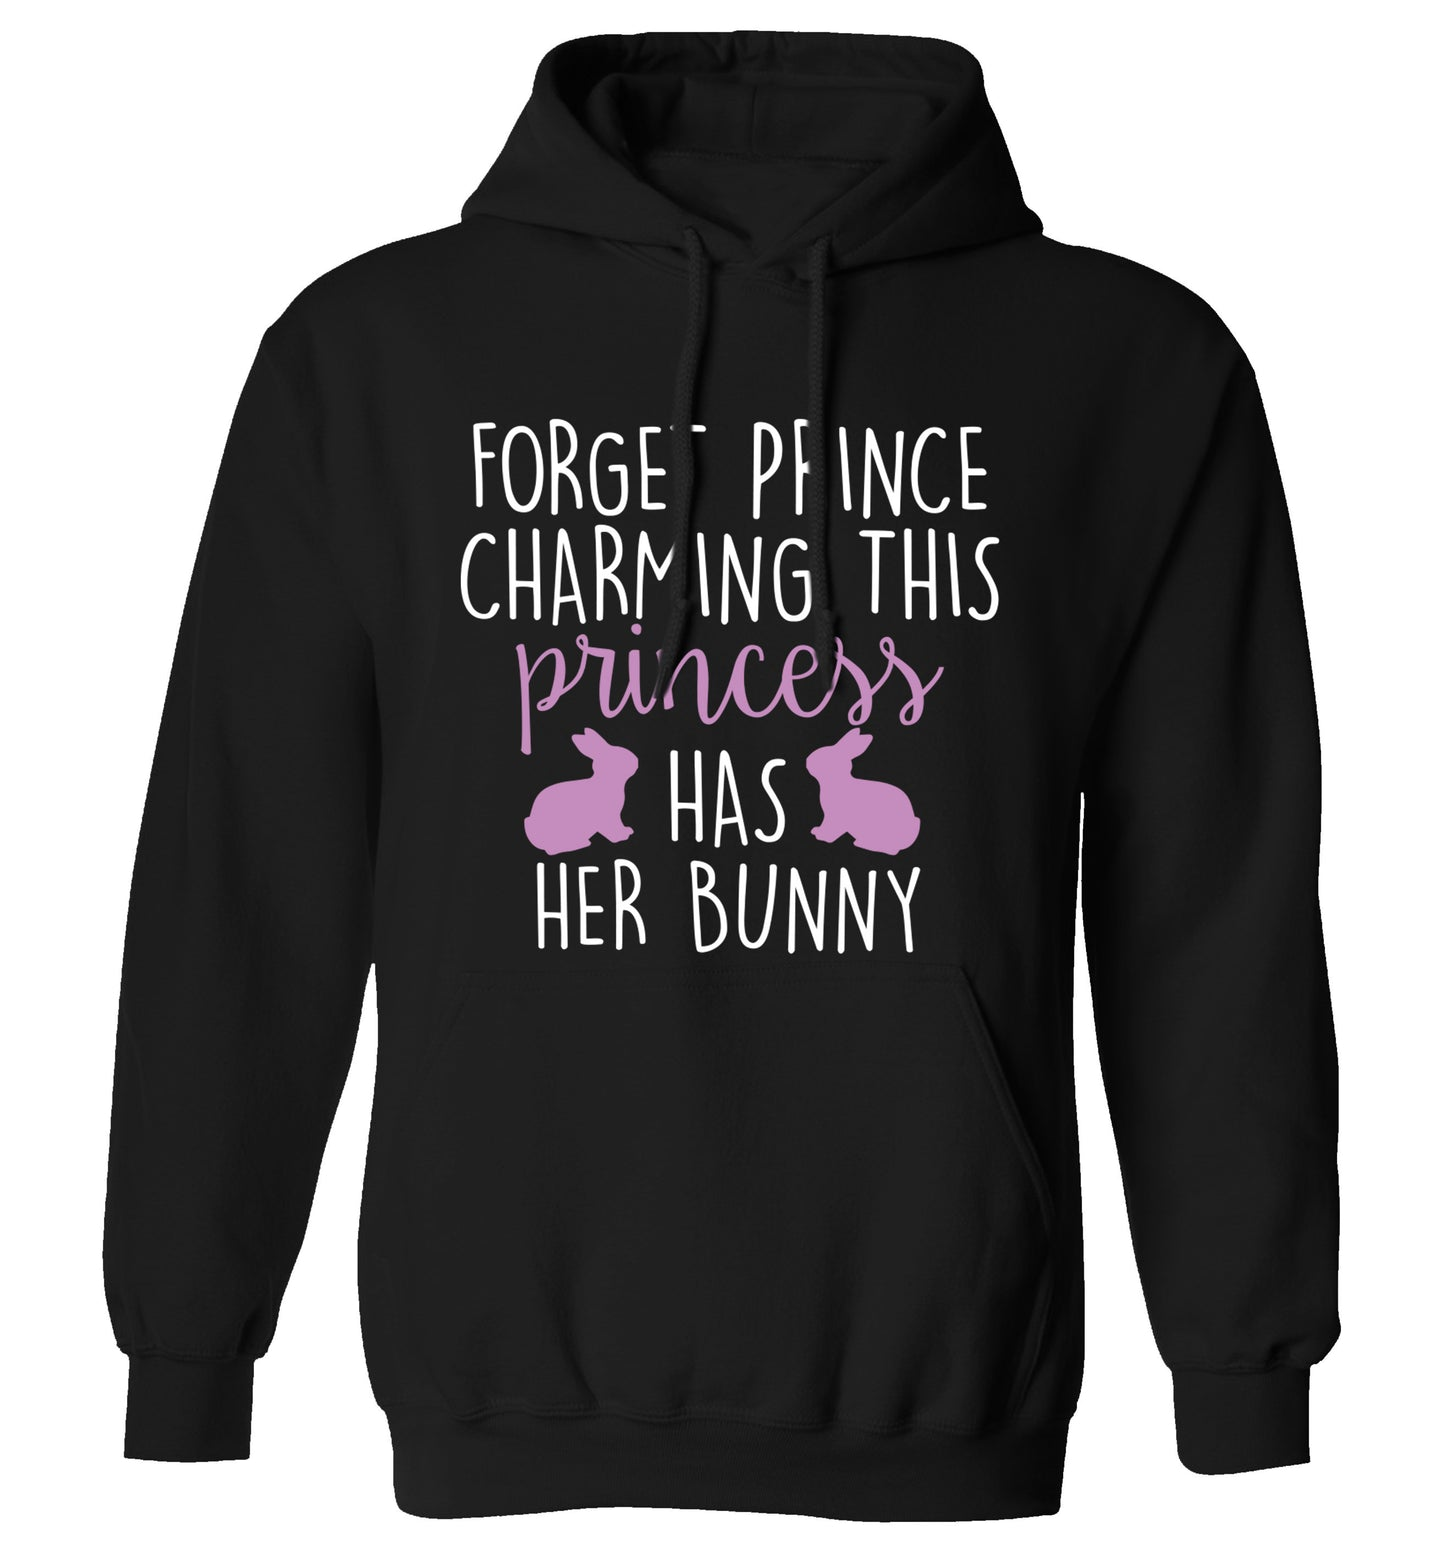 Forget prince charming this princess has her bunny adults unisex black hoodie 2XL